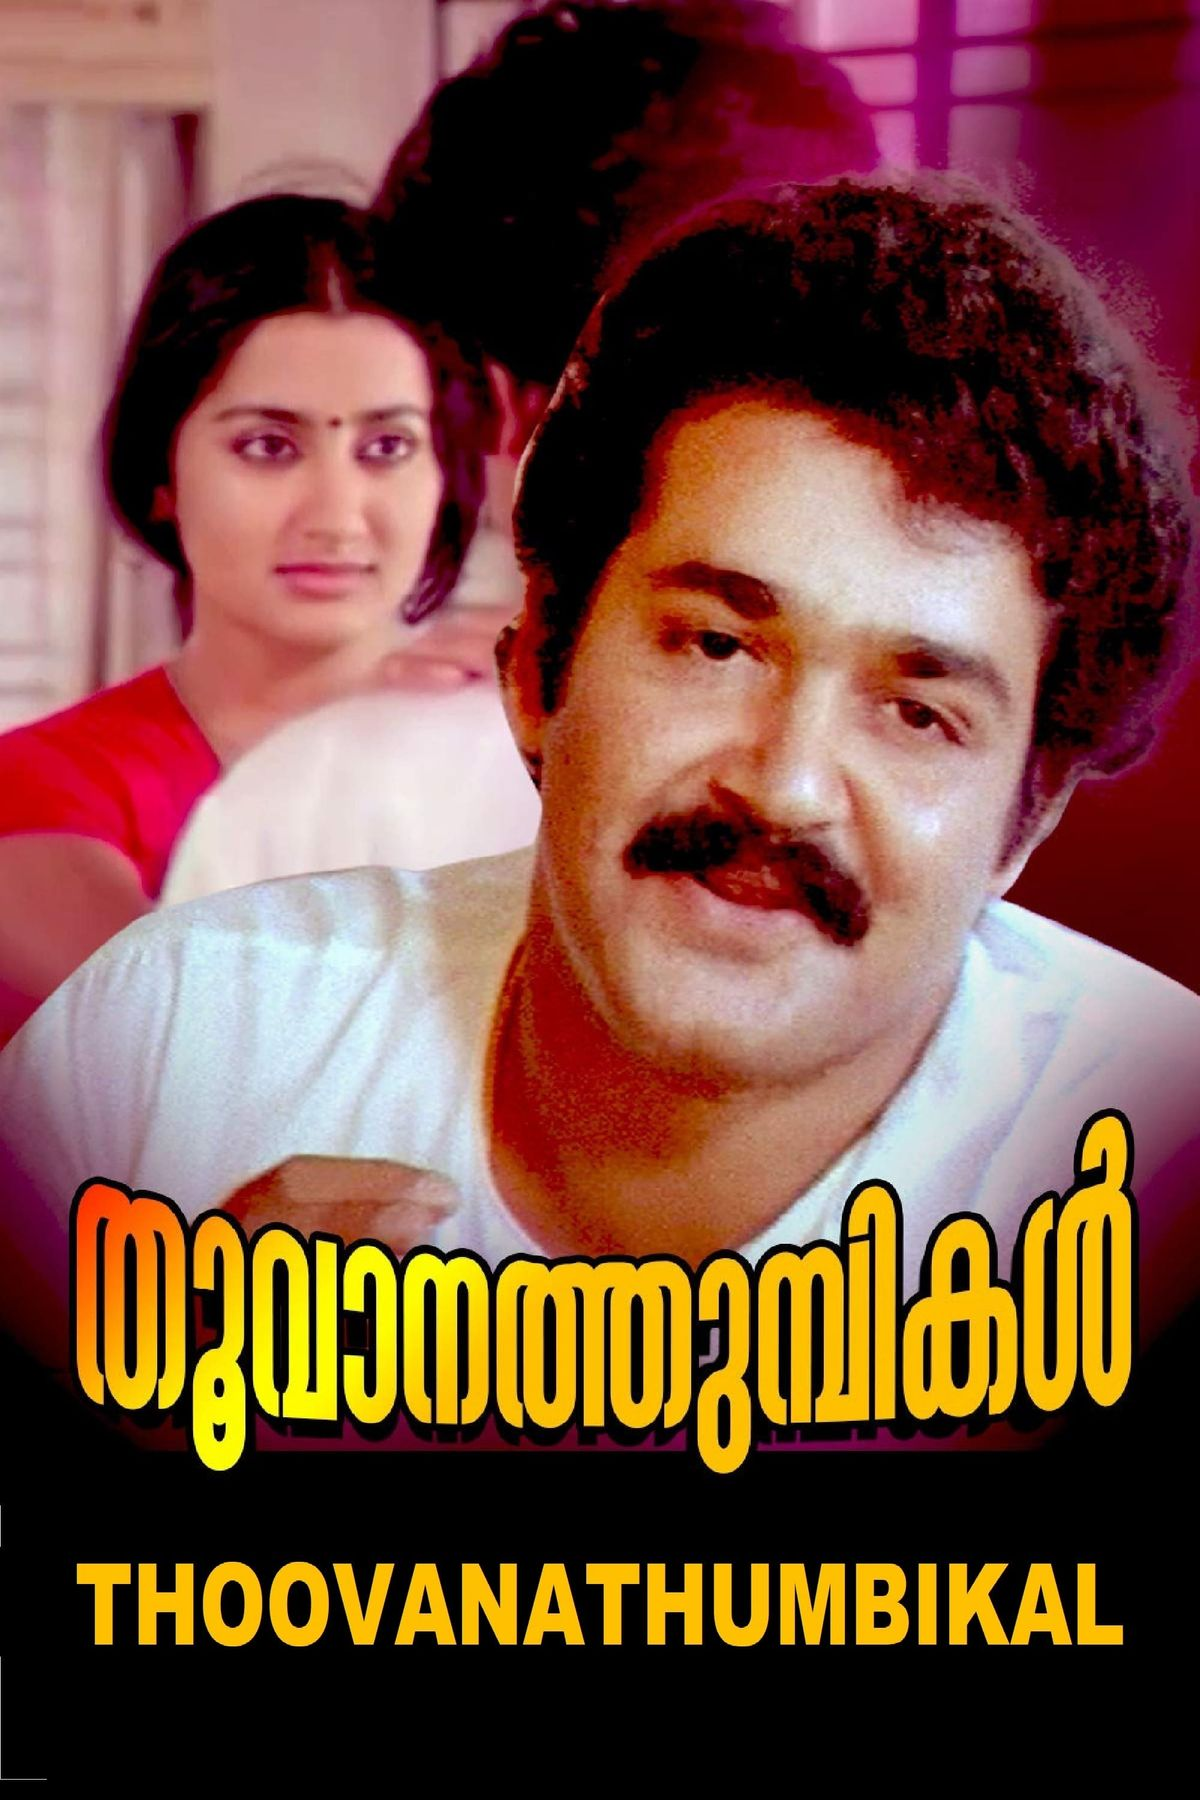 Best Travel And Culture movies in Malayalam